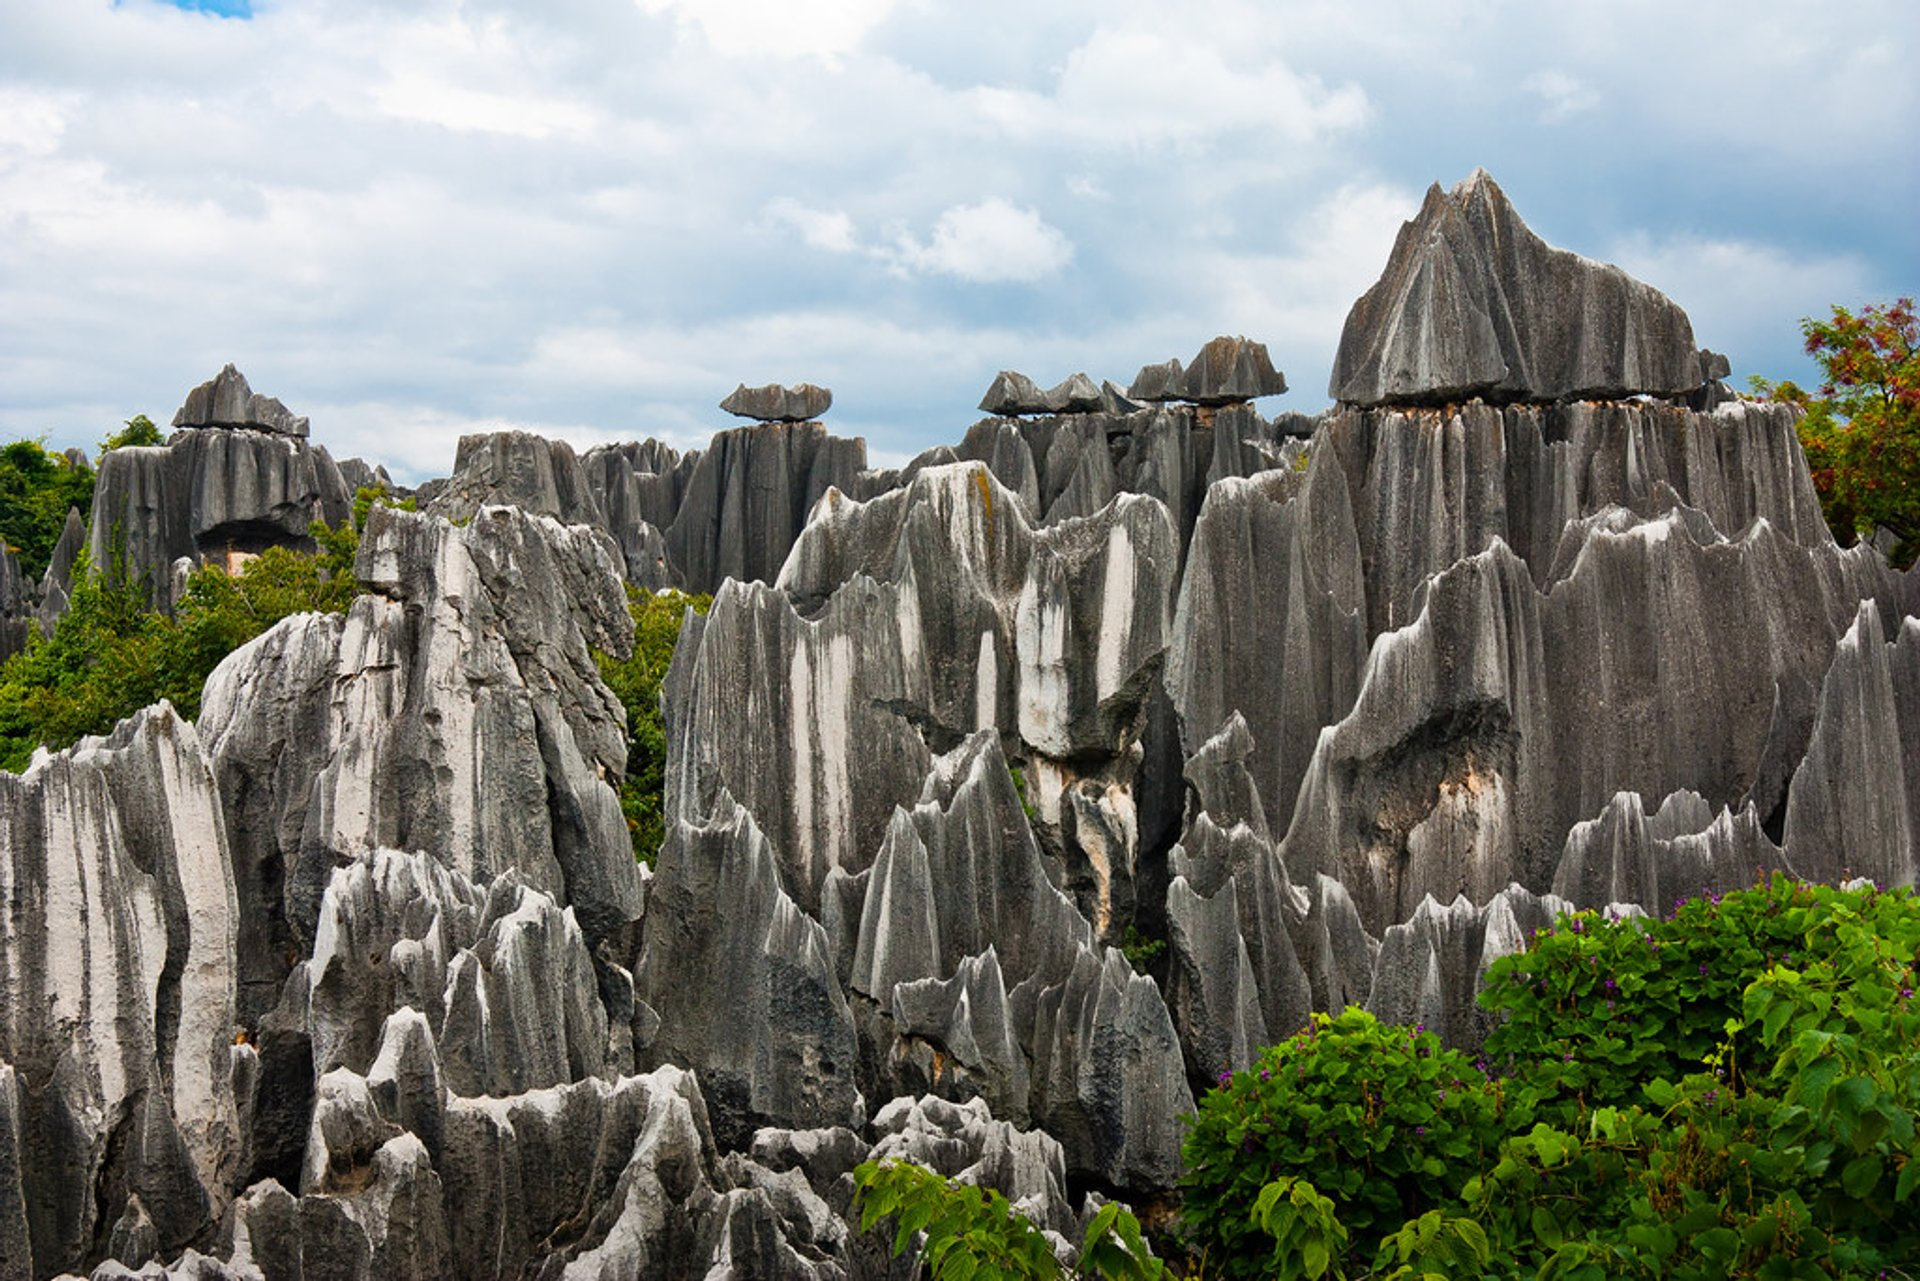 Shilin Stone Forest in China 2020 - Best Time